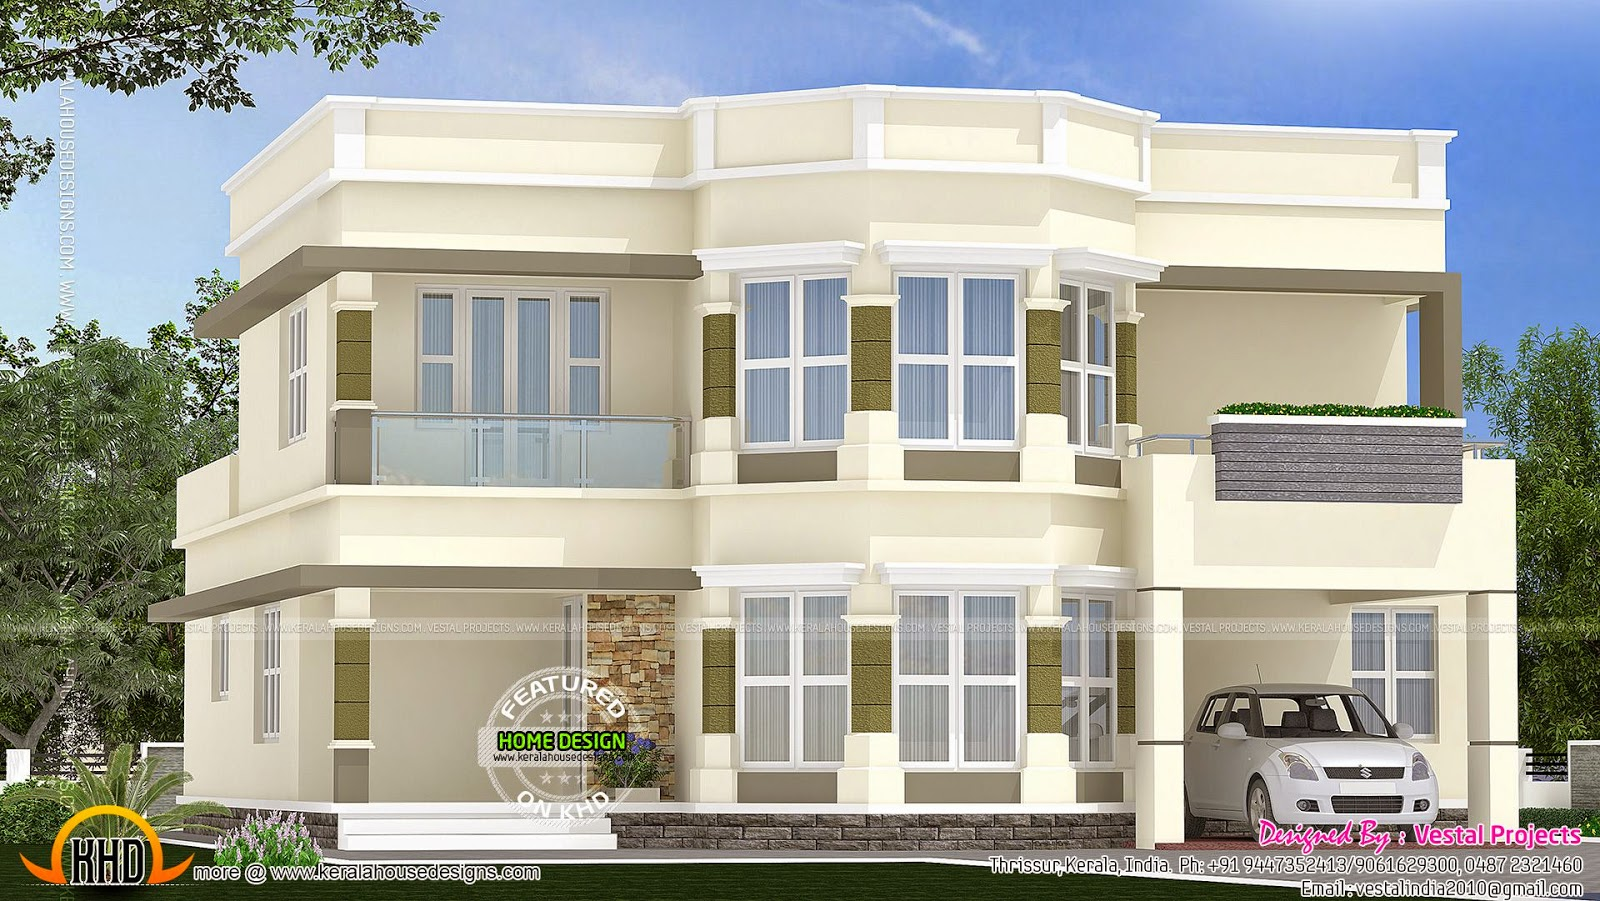 New modern house design kerala home design bloglovin for Latest modern home designs